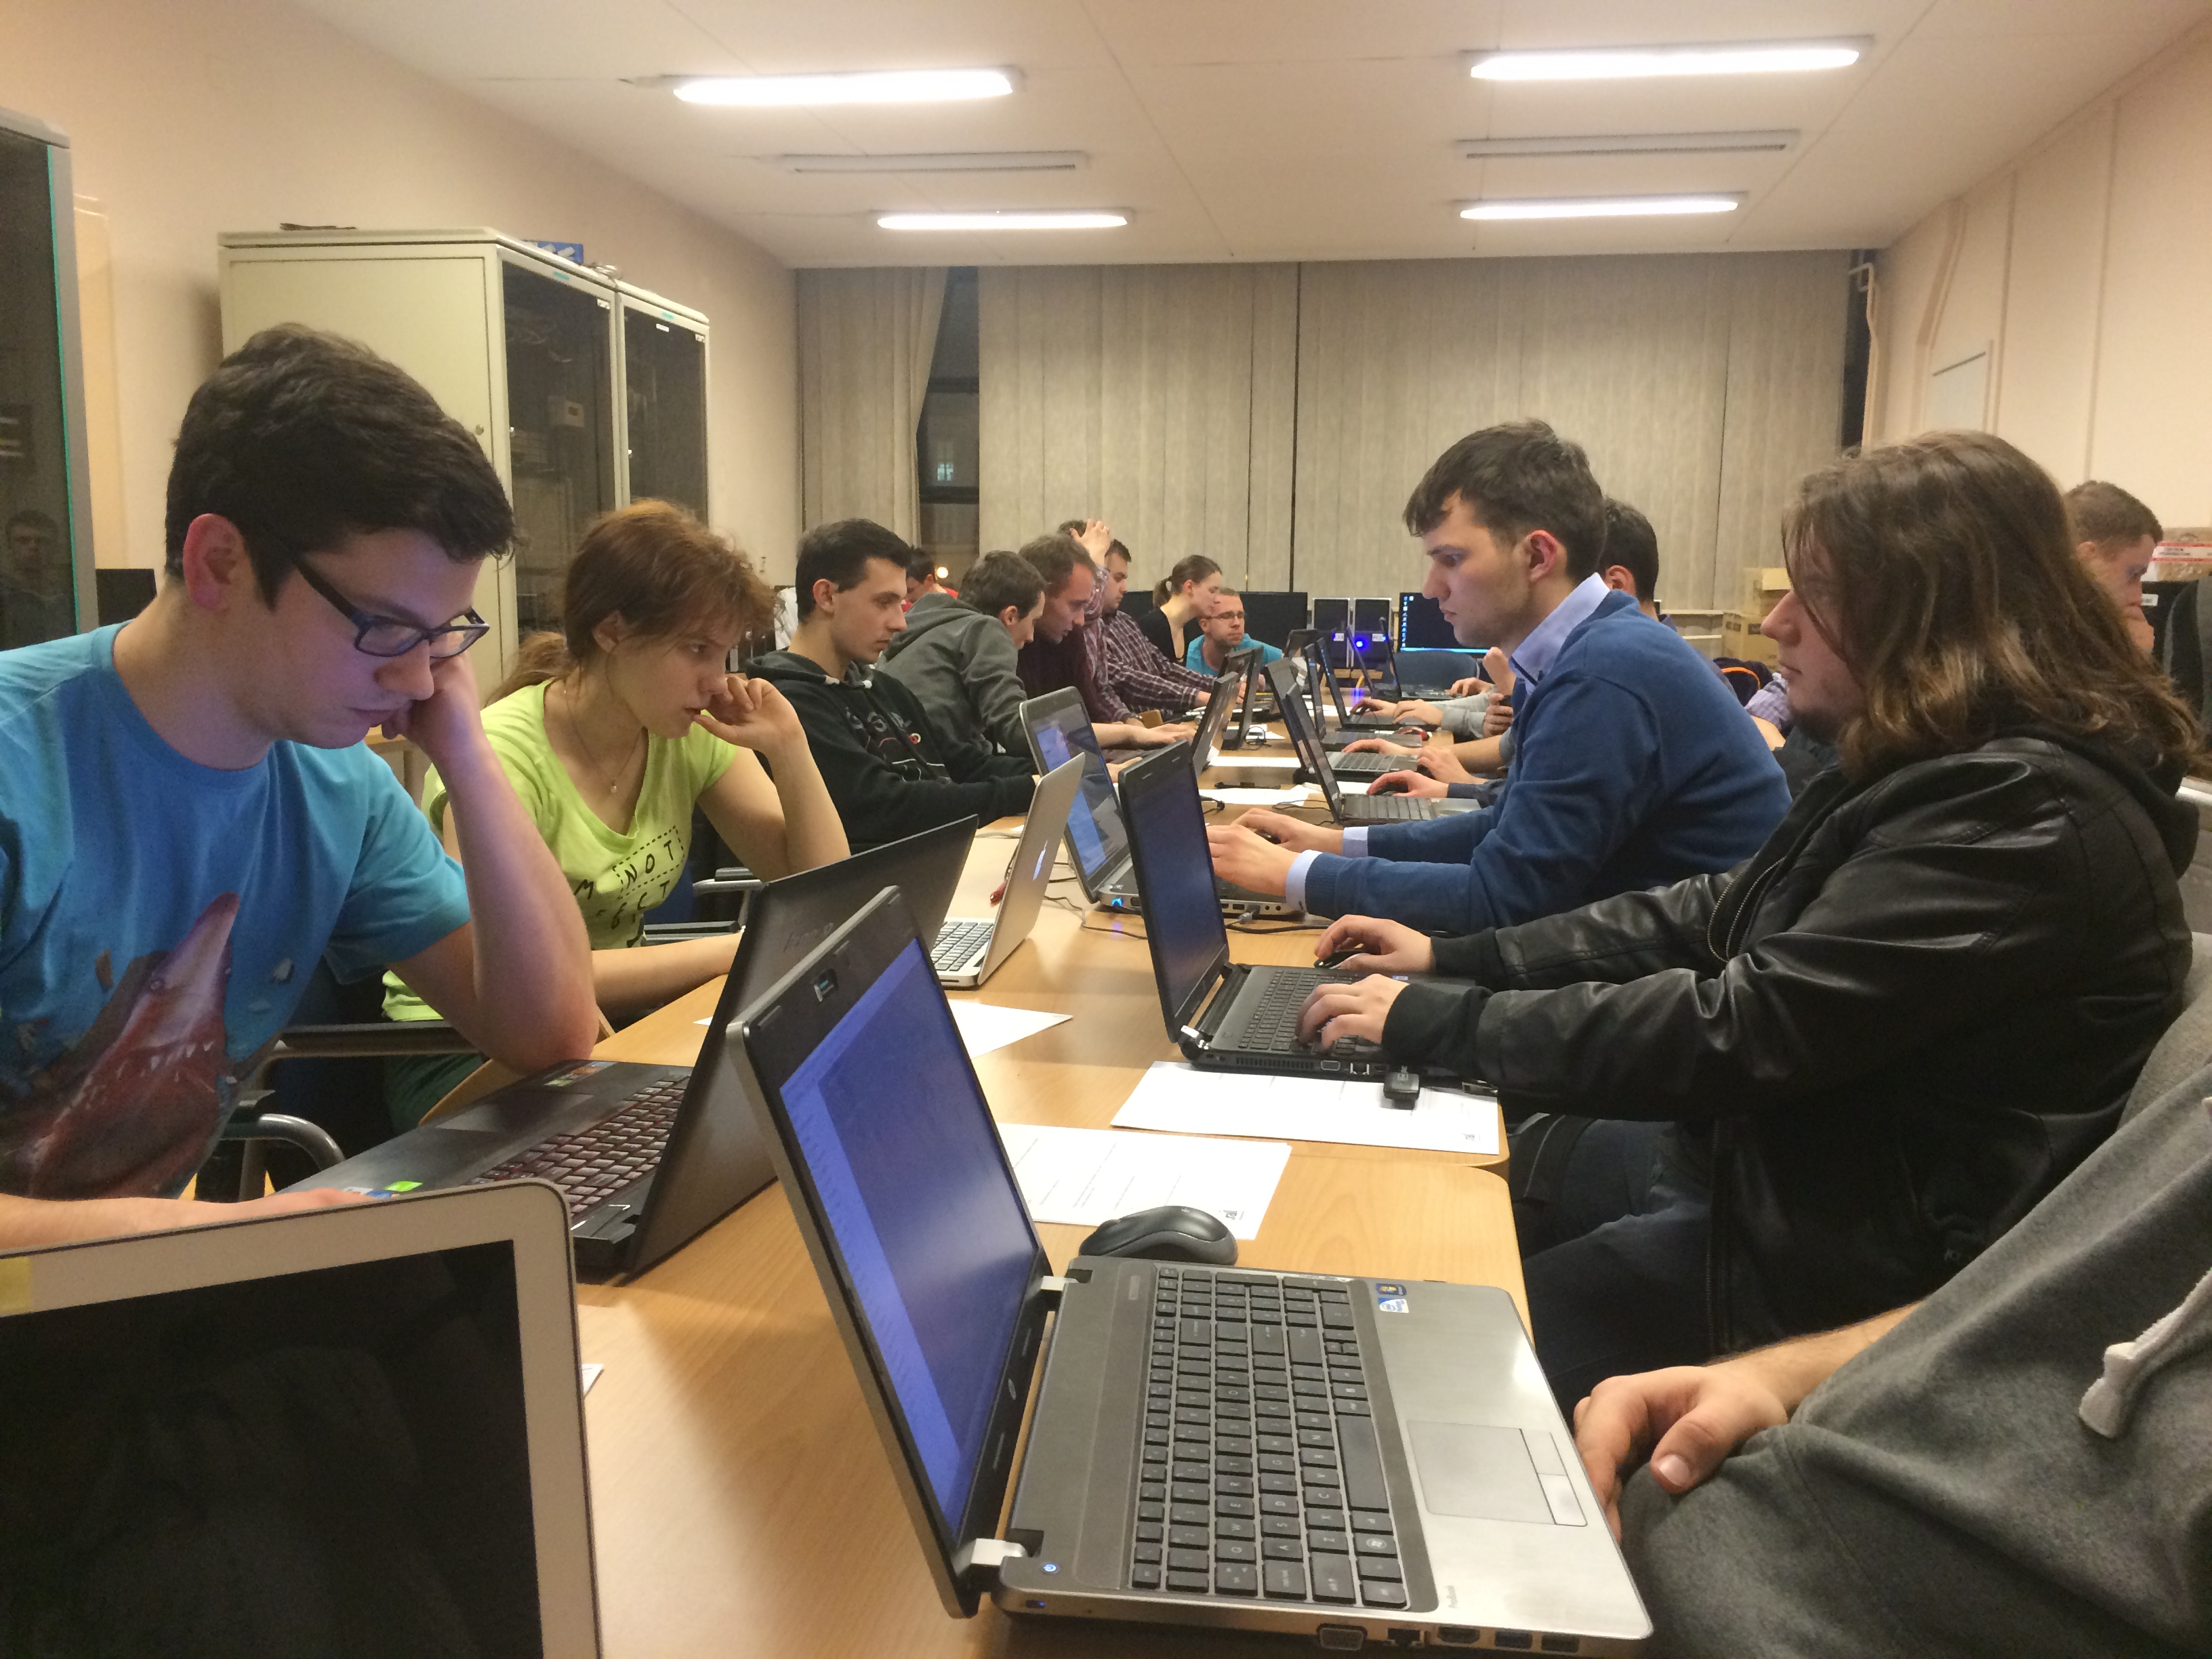 Ruby on Rails Development Workshops in Poland